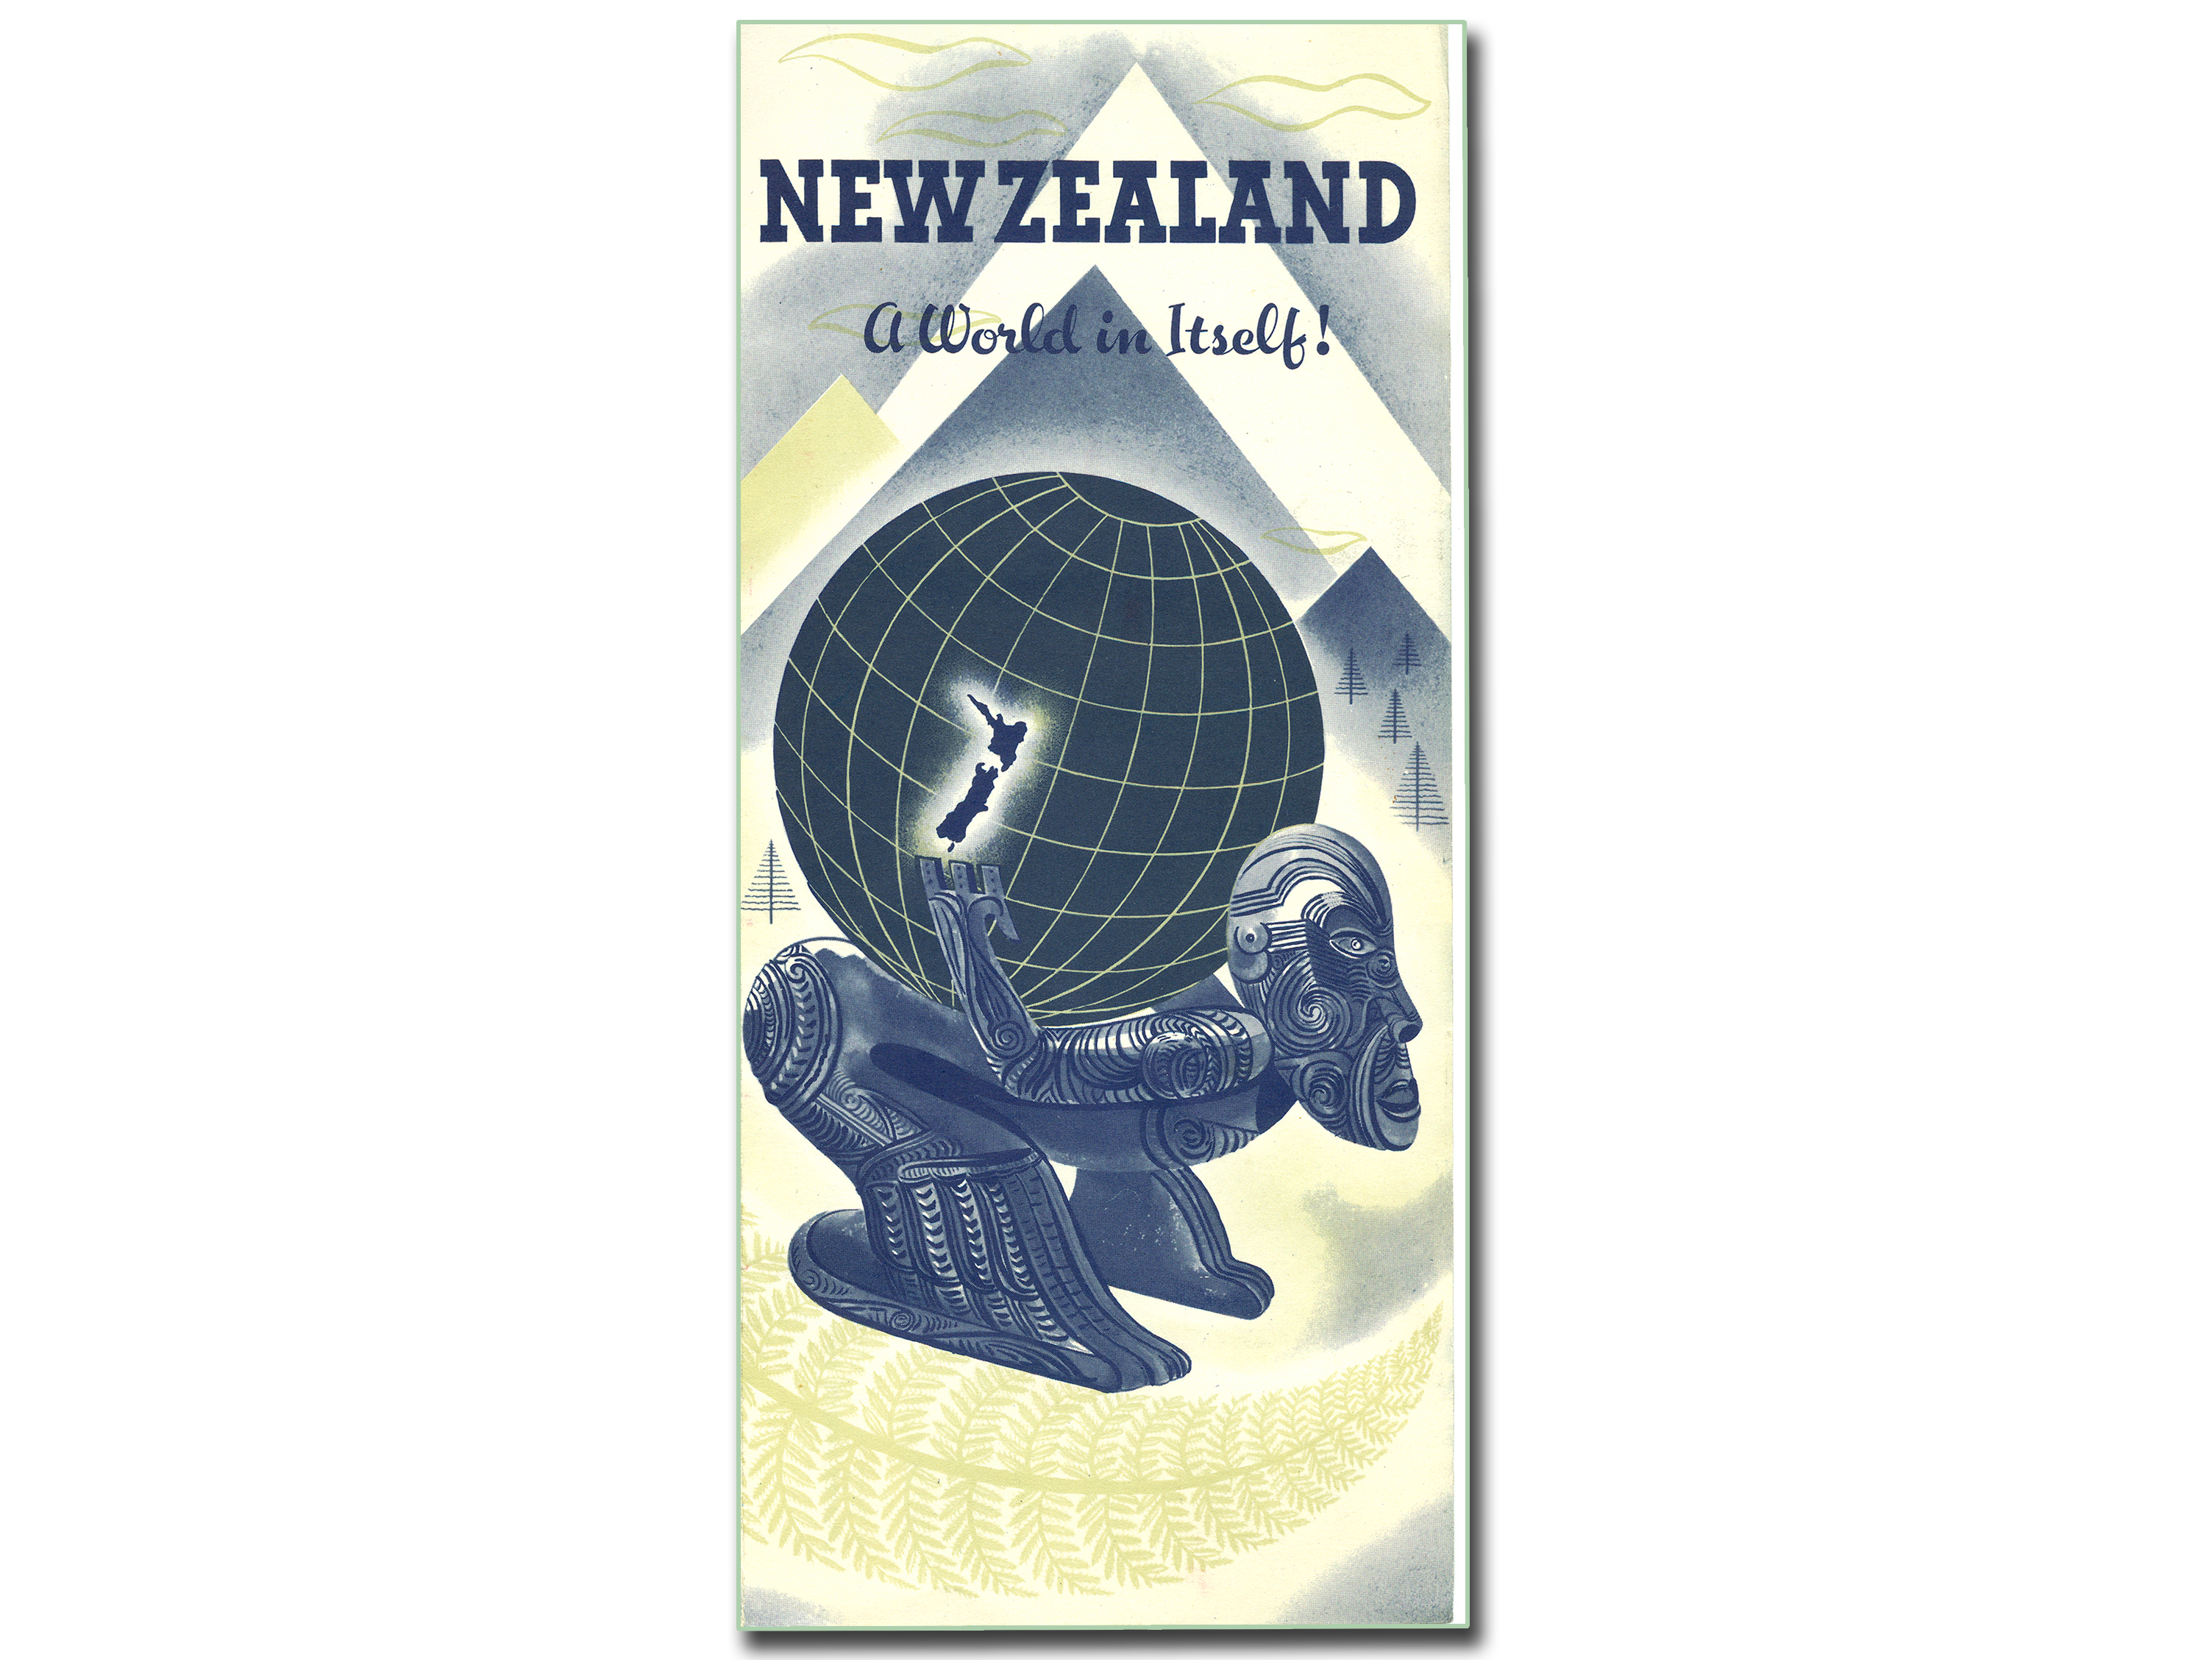 New Zealand - A World in Itself!